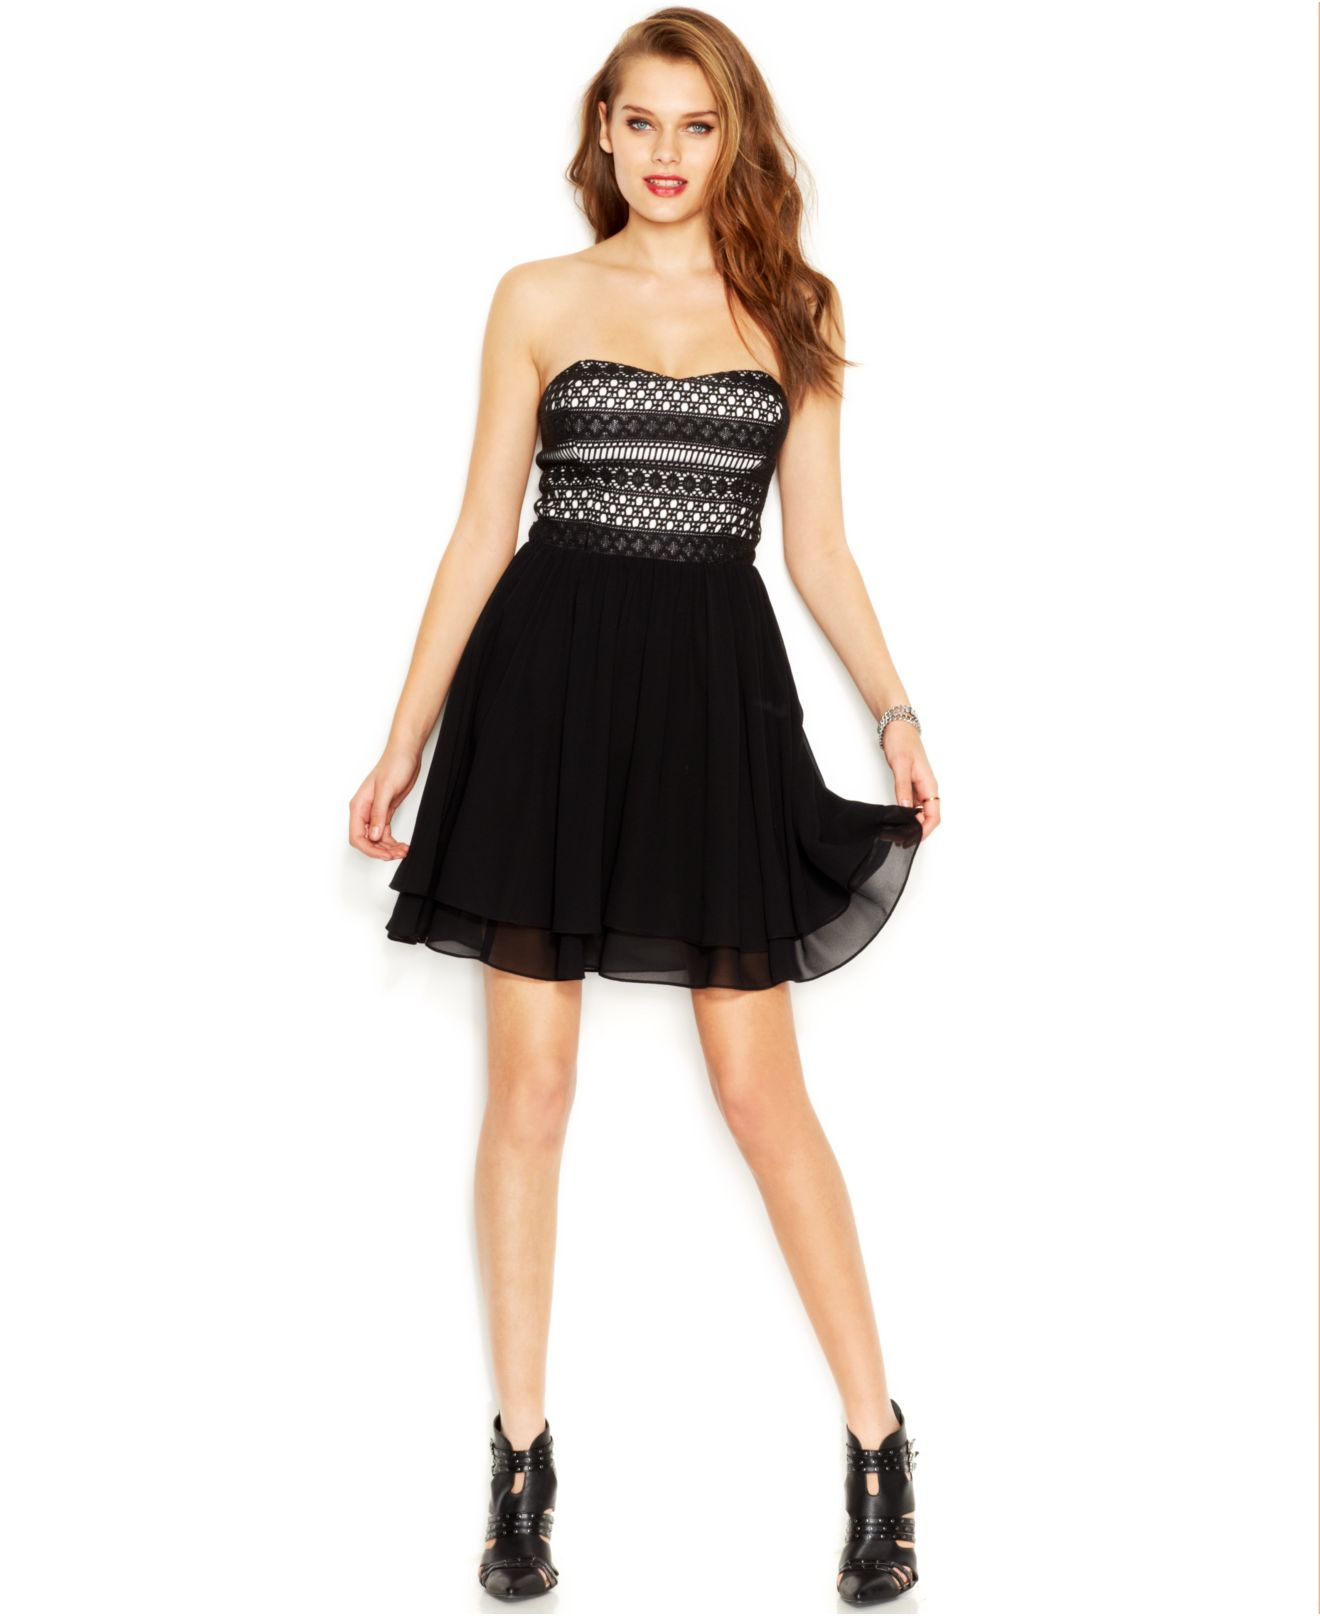 Lyst - Guess Contrast Crochet Strapless Dress in Black